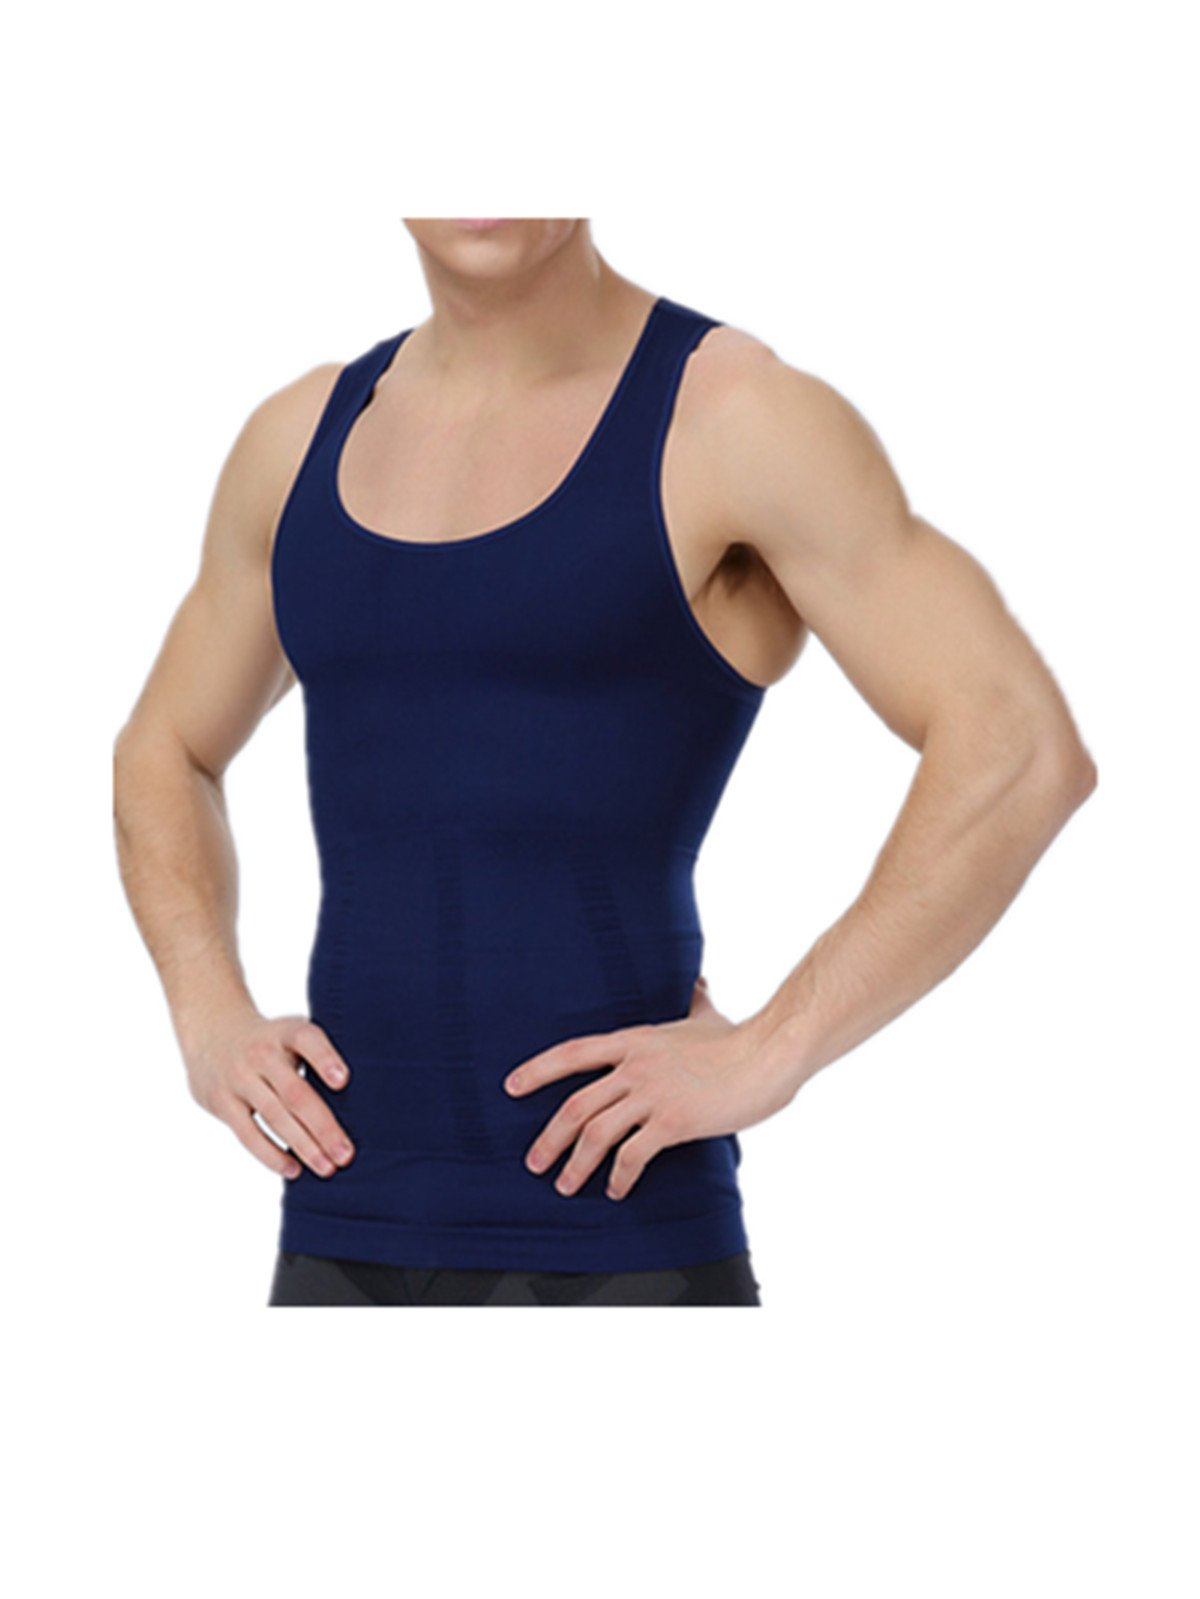 Leright Men's Compression Tank Top Seamless Stomach Shaper Slimming Vest Shirts, Navy Blue, M(US Size Small)